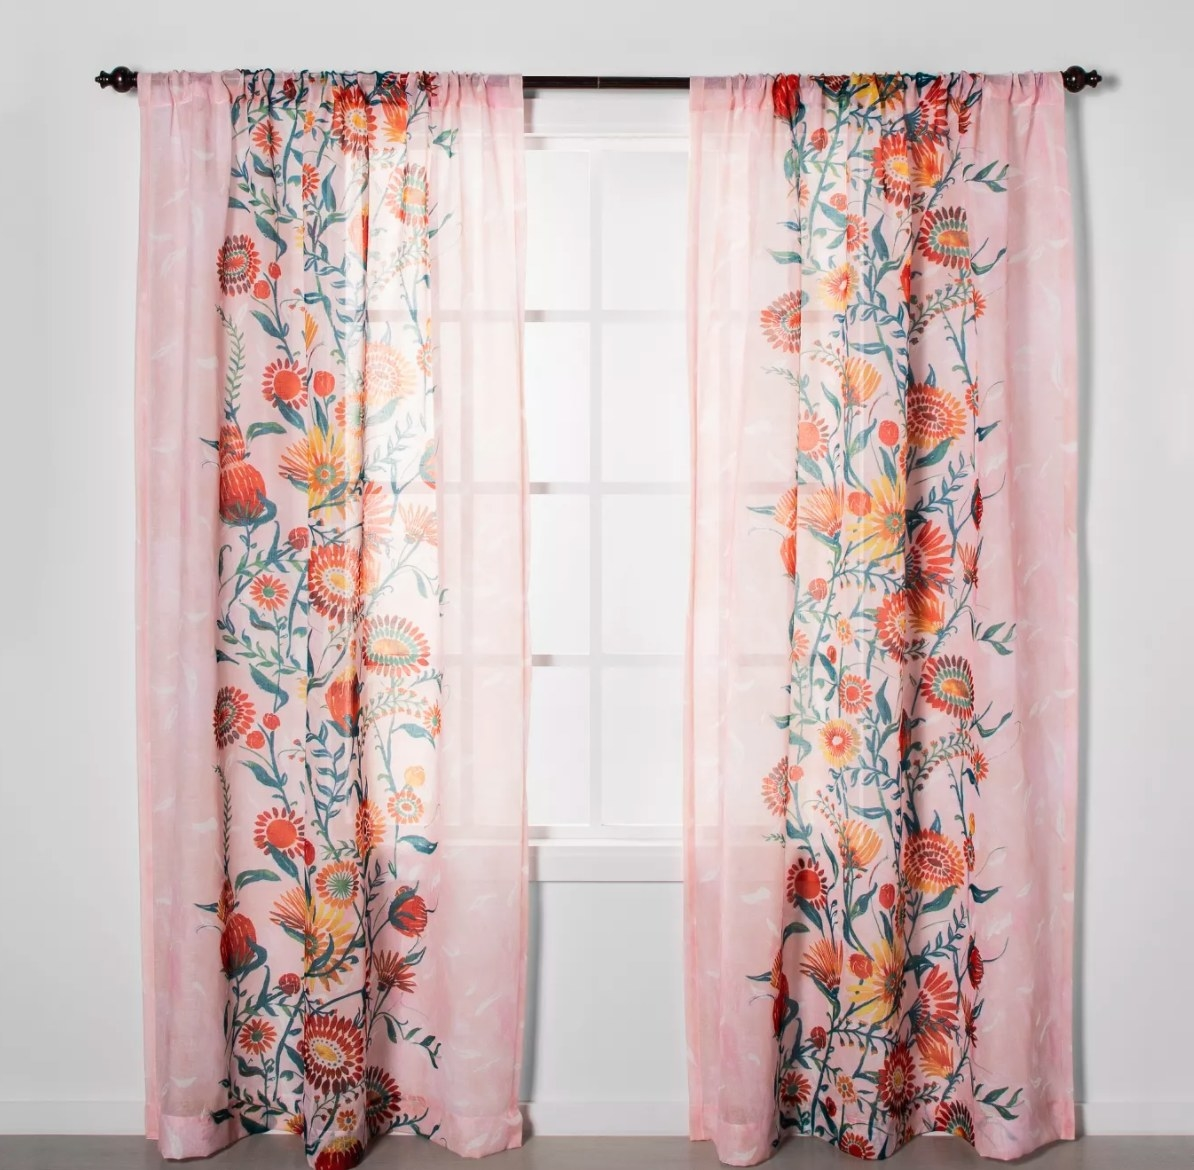 The curtains